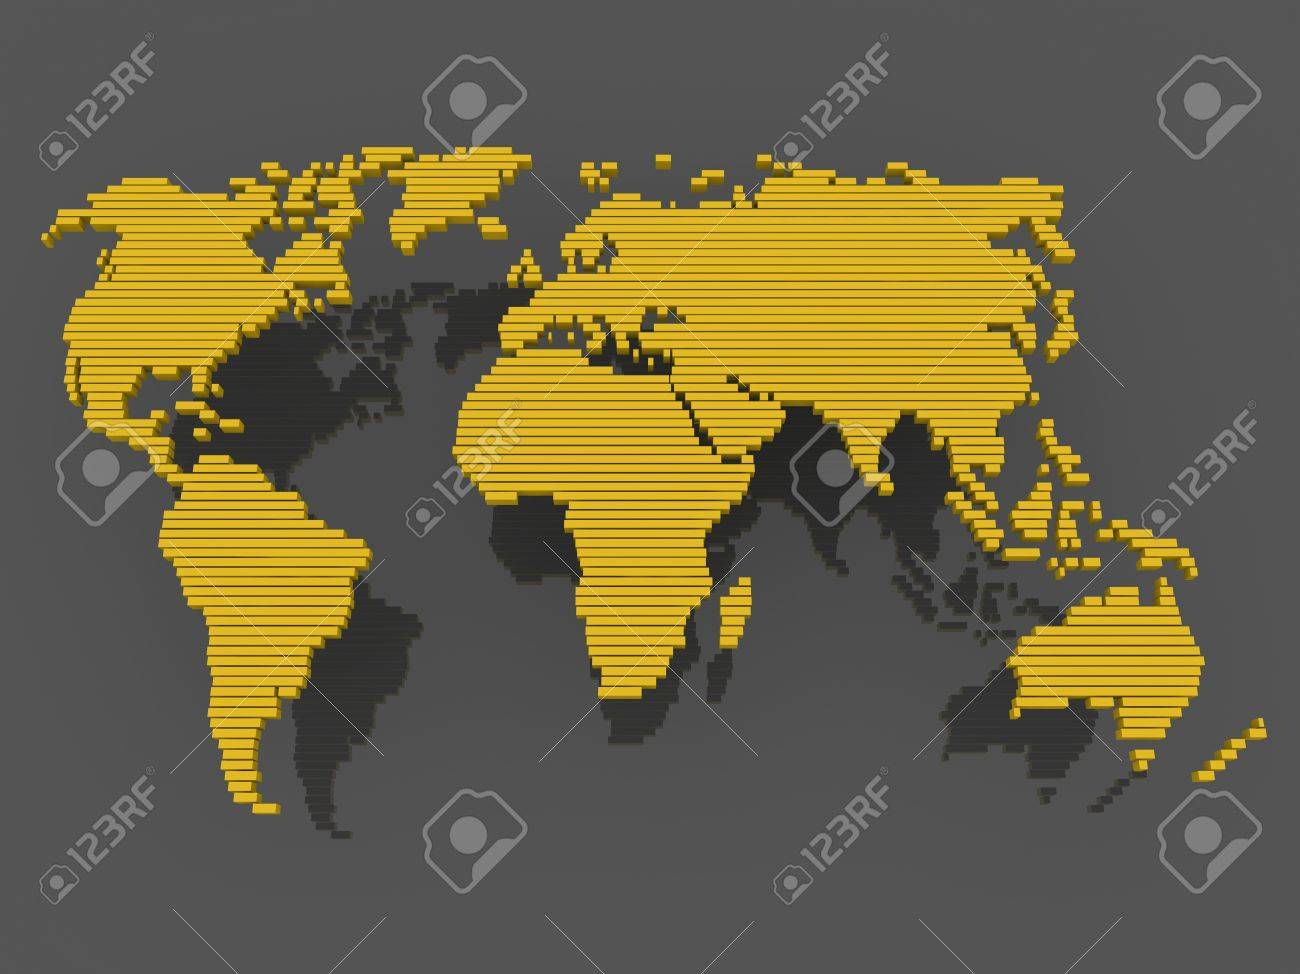 World map earth europe america africa gold stock photo stock photo world map earth europe america africa gold gumiabroncs Image collections